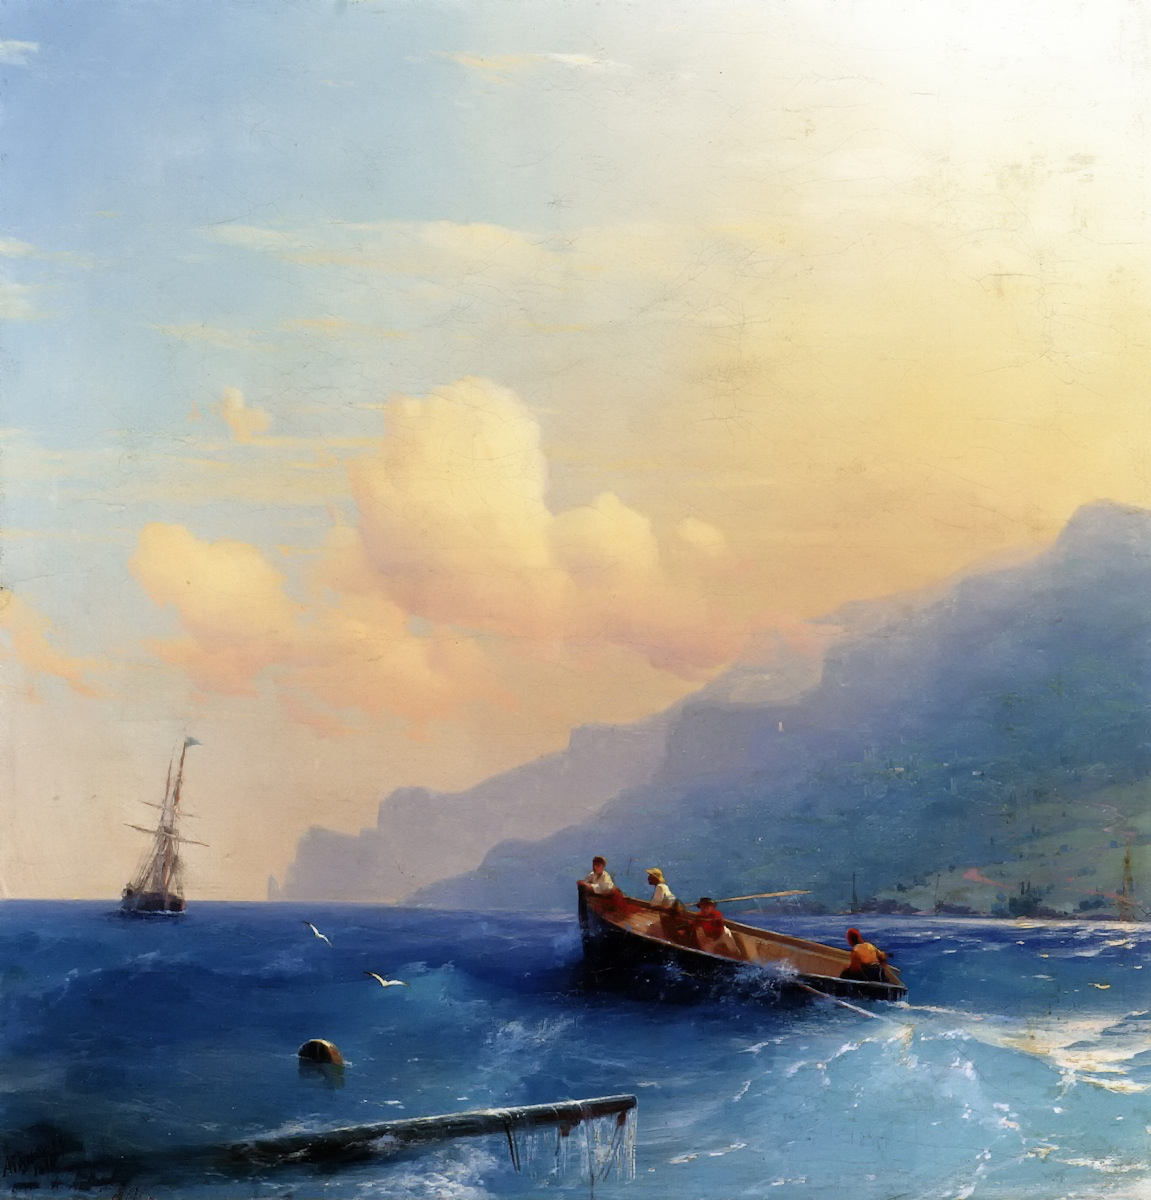 Searching for Suvivors by Ivan Aivazovsky, 1870